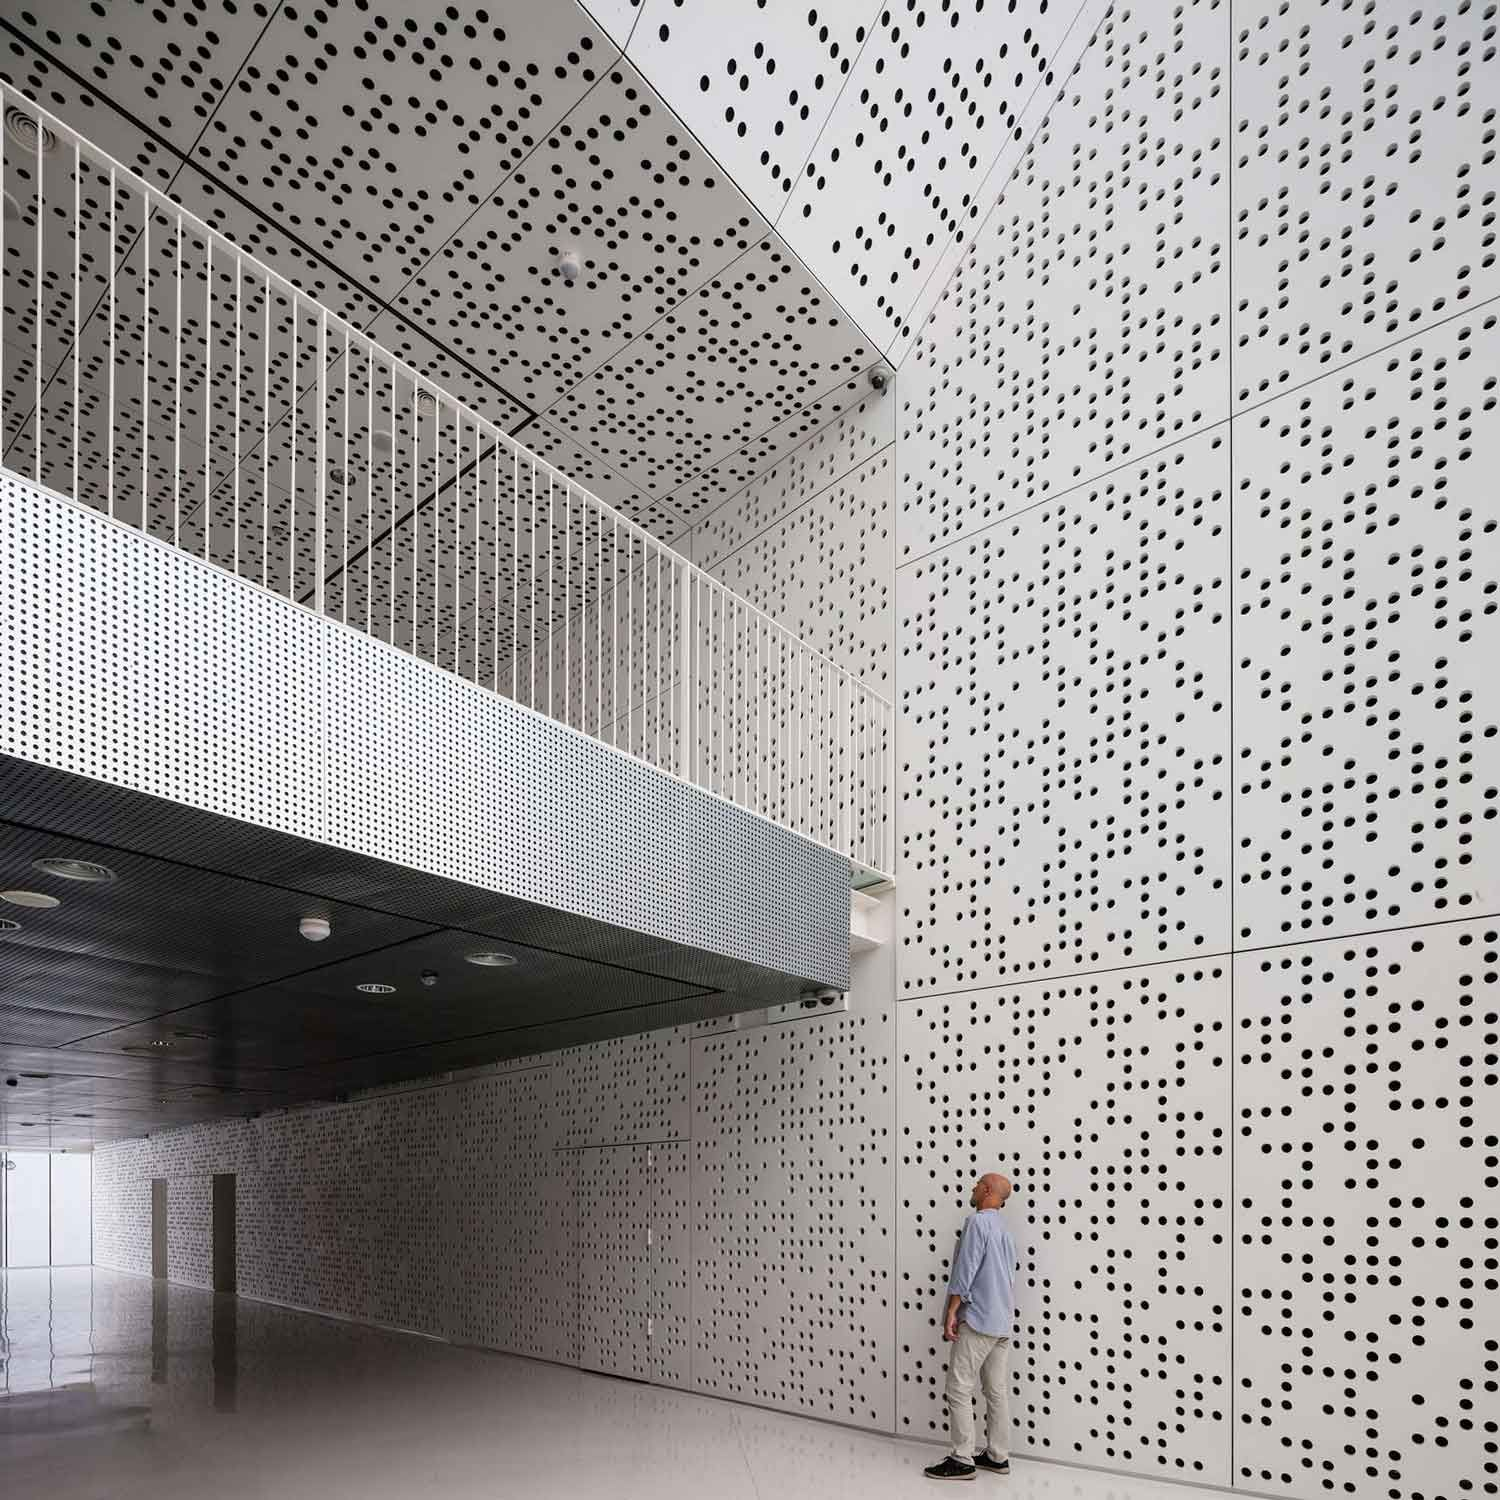 Stories On Design Perfectly Perforated Yellowtrace Facade Design Architecture Concrete Interiors